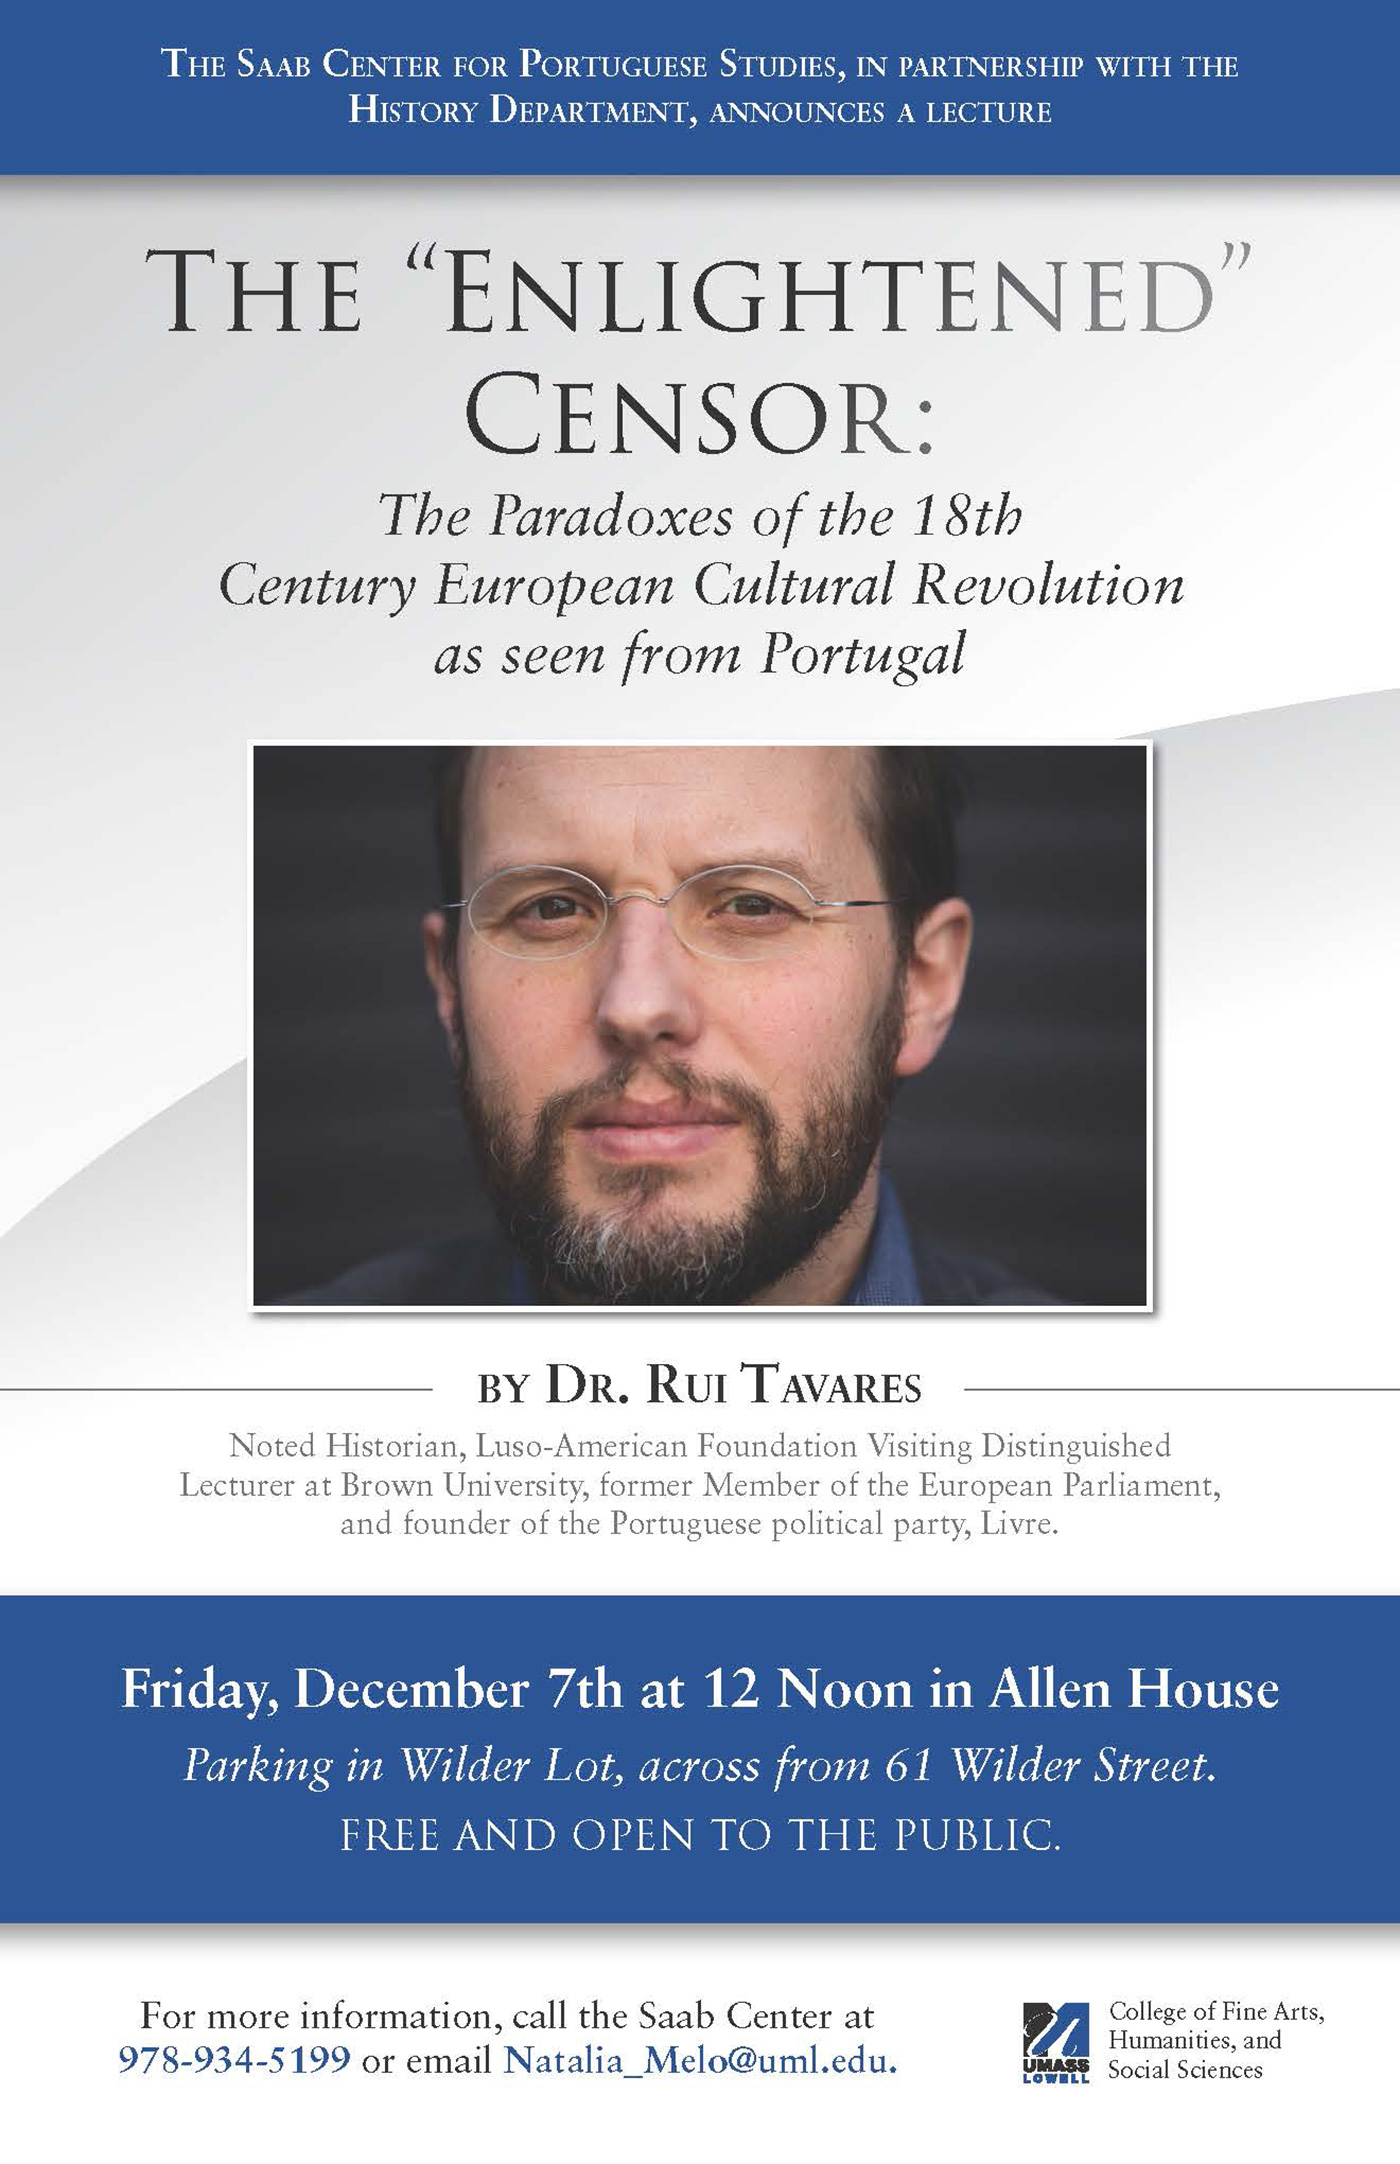 "The Saab Center for Portuguese Studies, in partnership with the History Department, announces a lecture by Dr. Rui Tavares, noted historian and the Luso-American Foundation Visiting Distinguished Lecturer at Brown University in Fall 2018, titled ""The 'Enlightened' Censor: The Paradoxes of the 18th-Century European Cultural Revolution as seen from Portugal,"